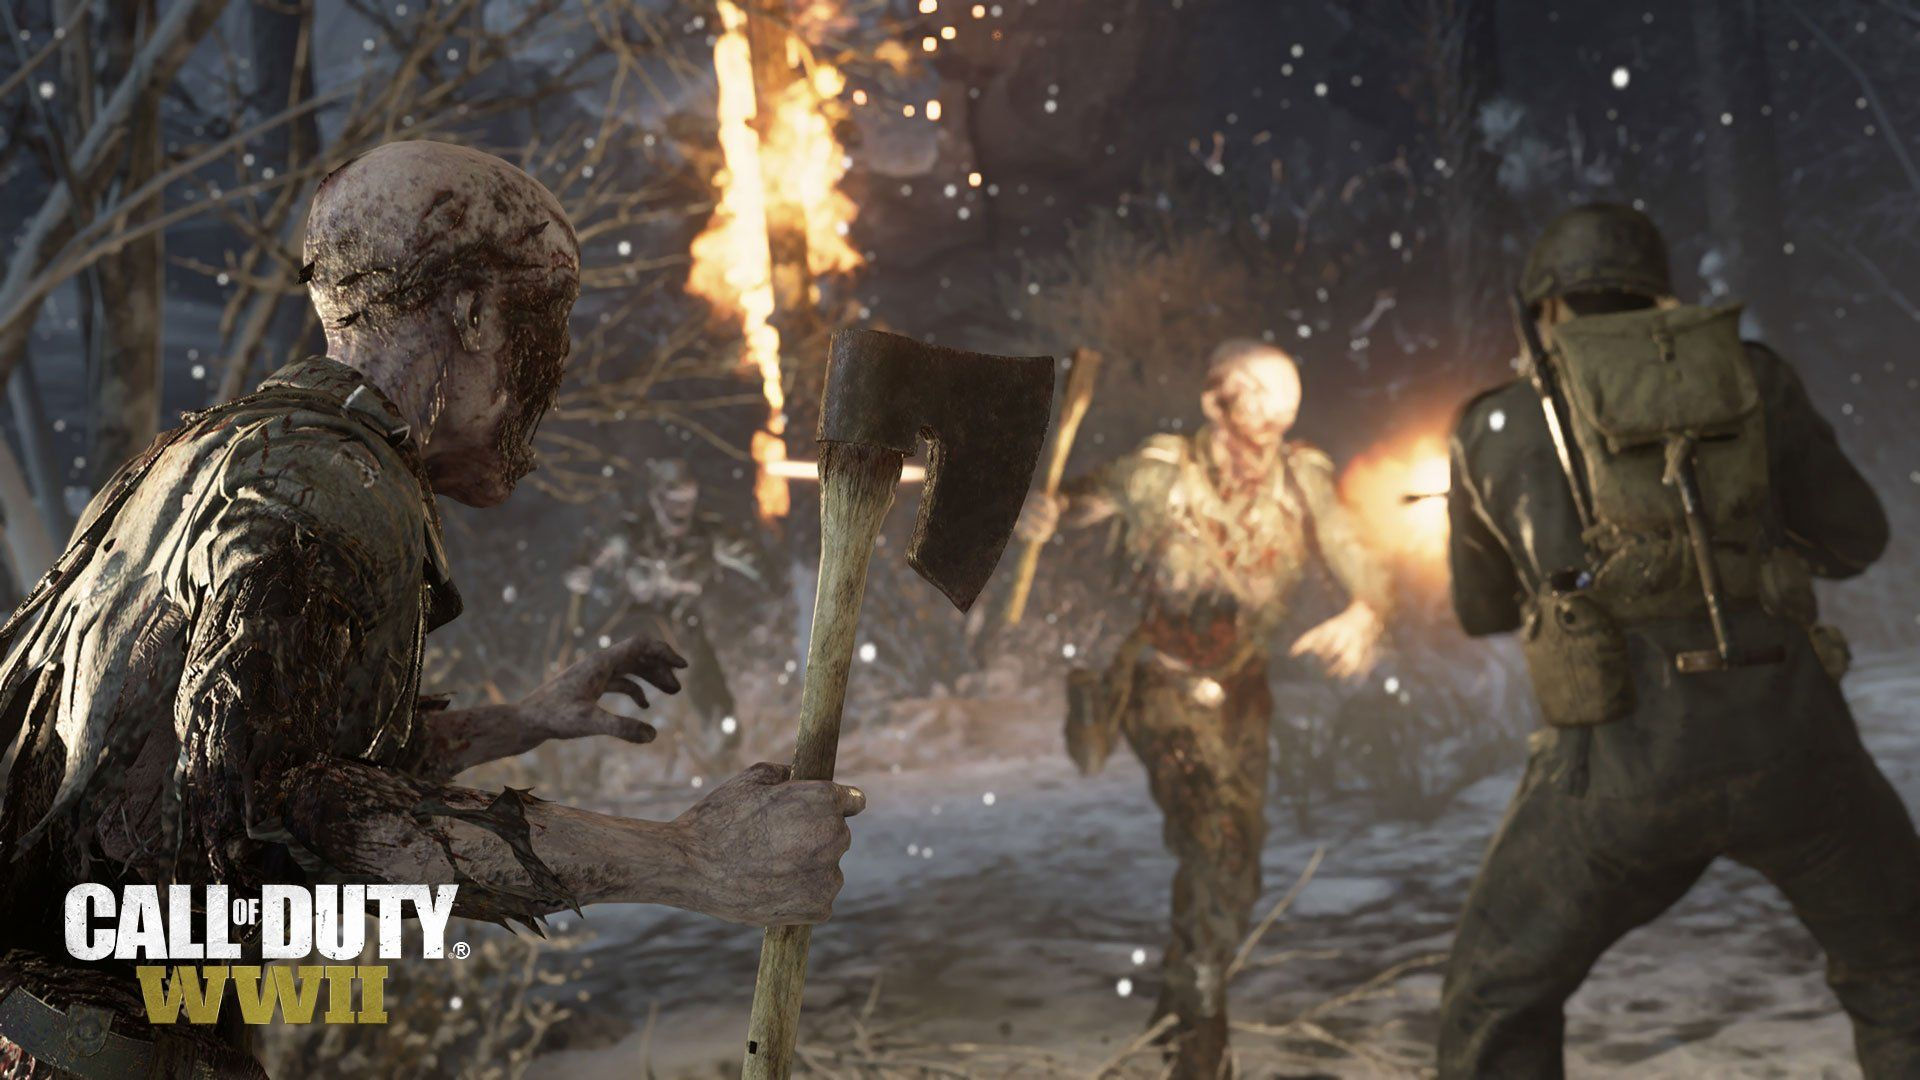 Call Of Duty Wwii Update 1 15 Adds Attack Of Undead Event